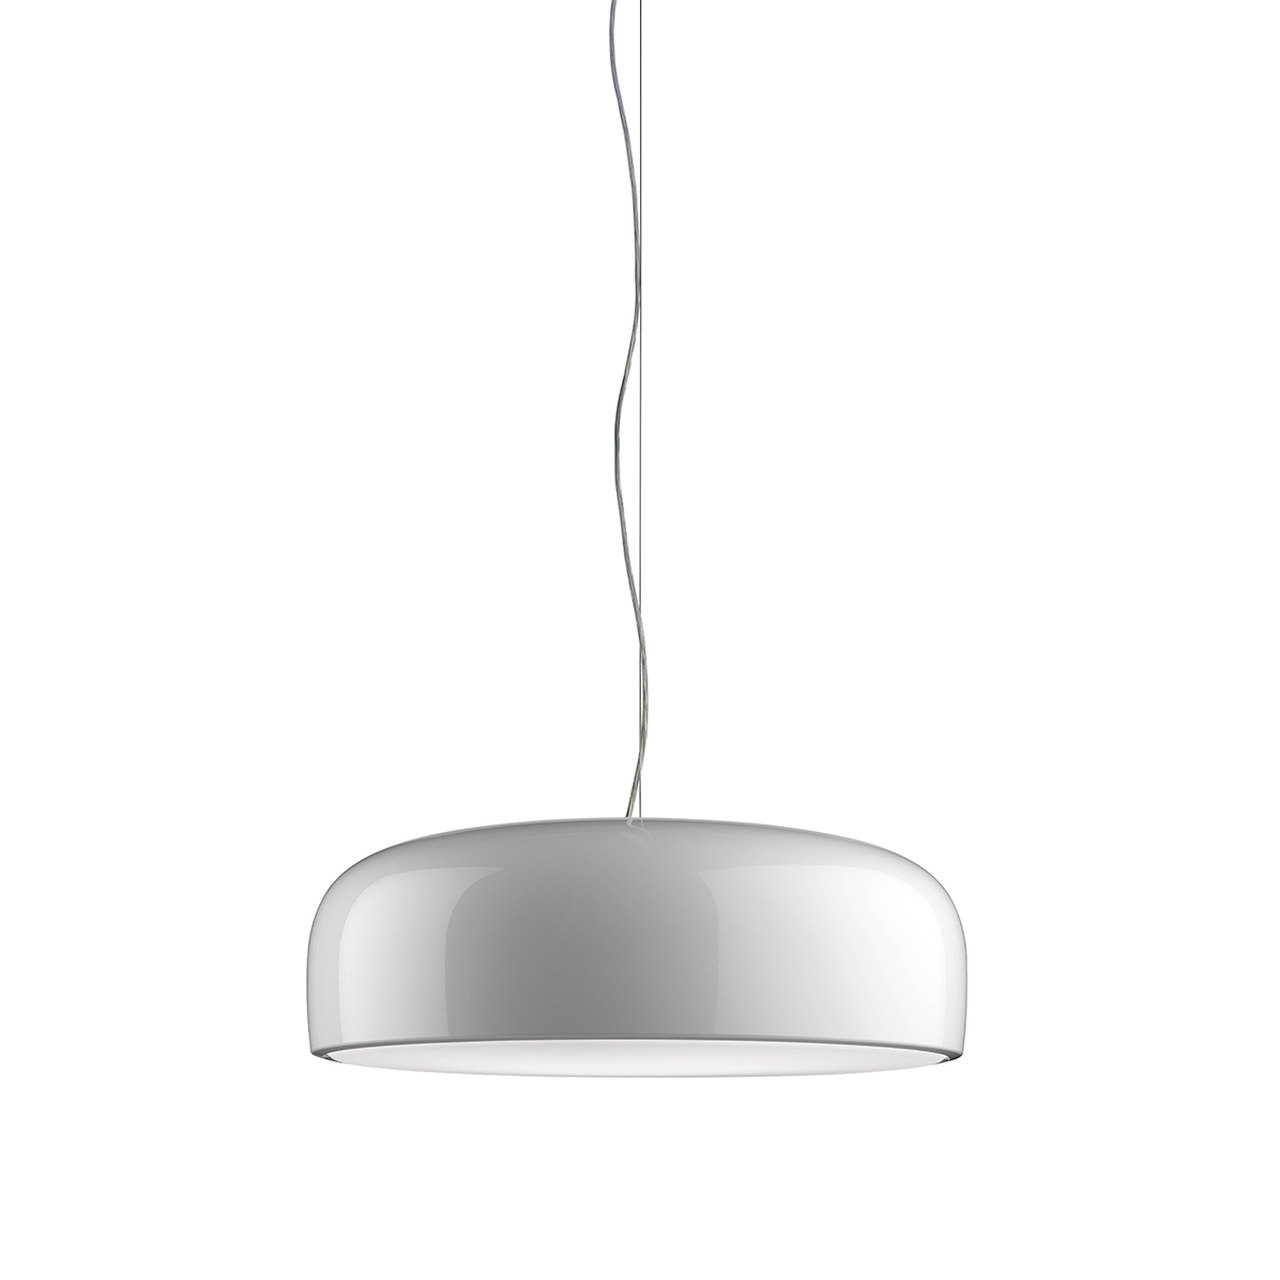 [WLLP_2054]   Smithfield S Suspension Modern Pendant Lamp in LED and Halogen   FLOS USA   T3 Light Fixture Wiring Diagram      FLOS USA